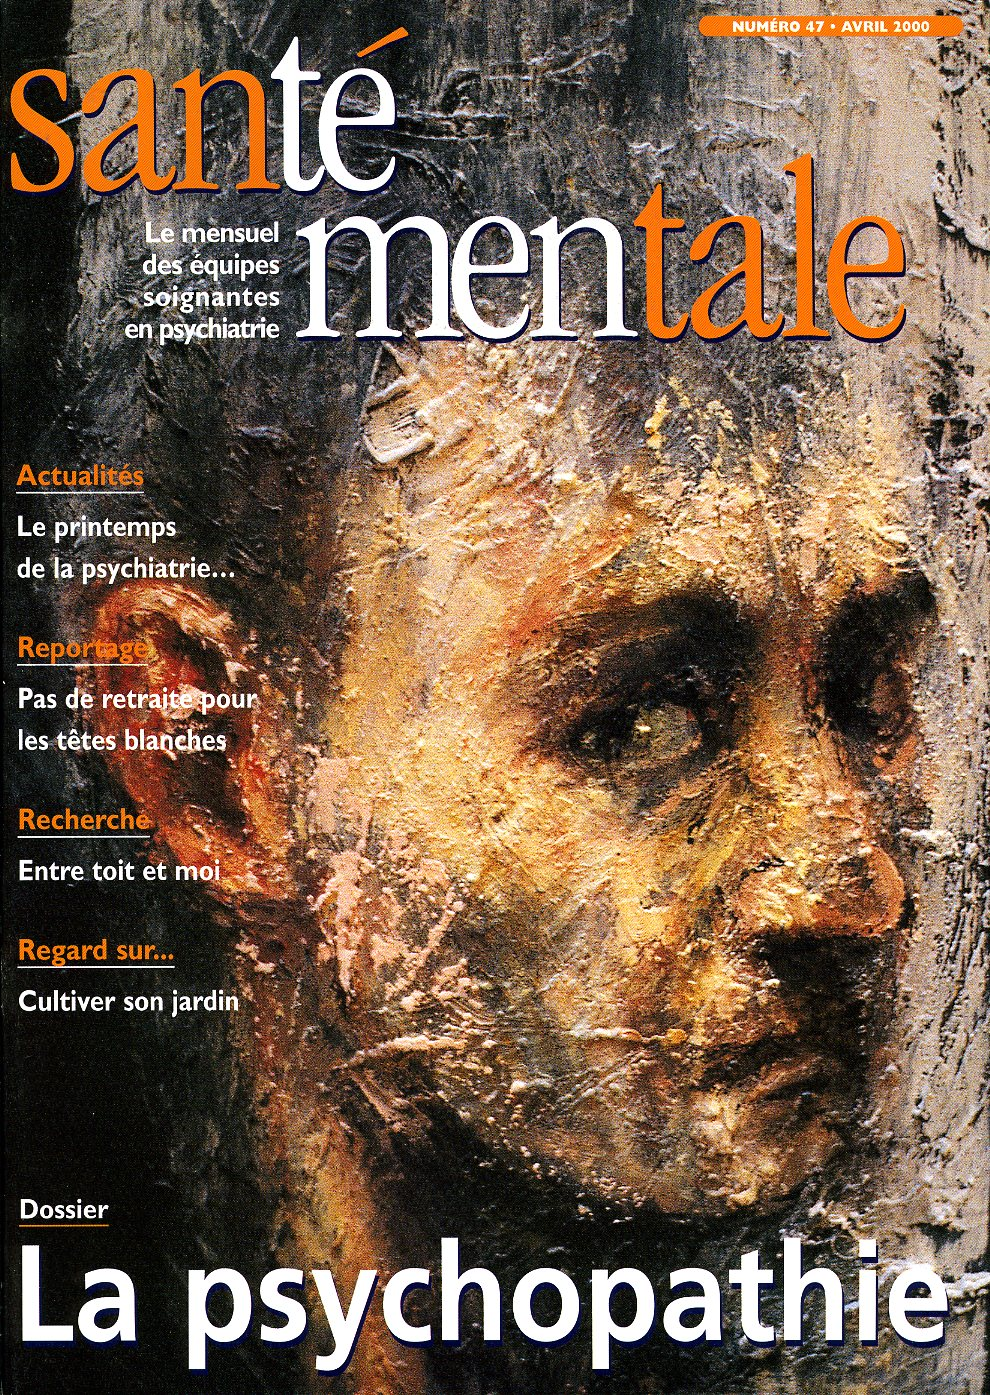 Couverture N°47 avril 2000